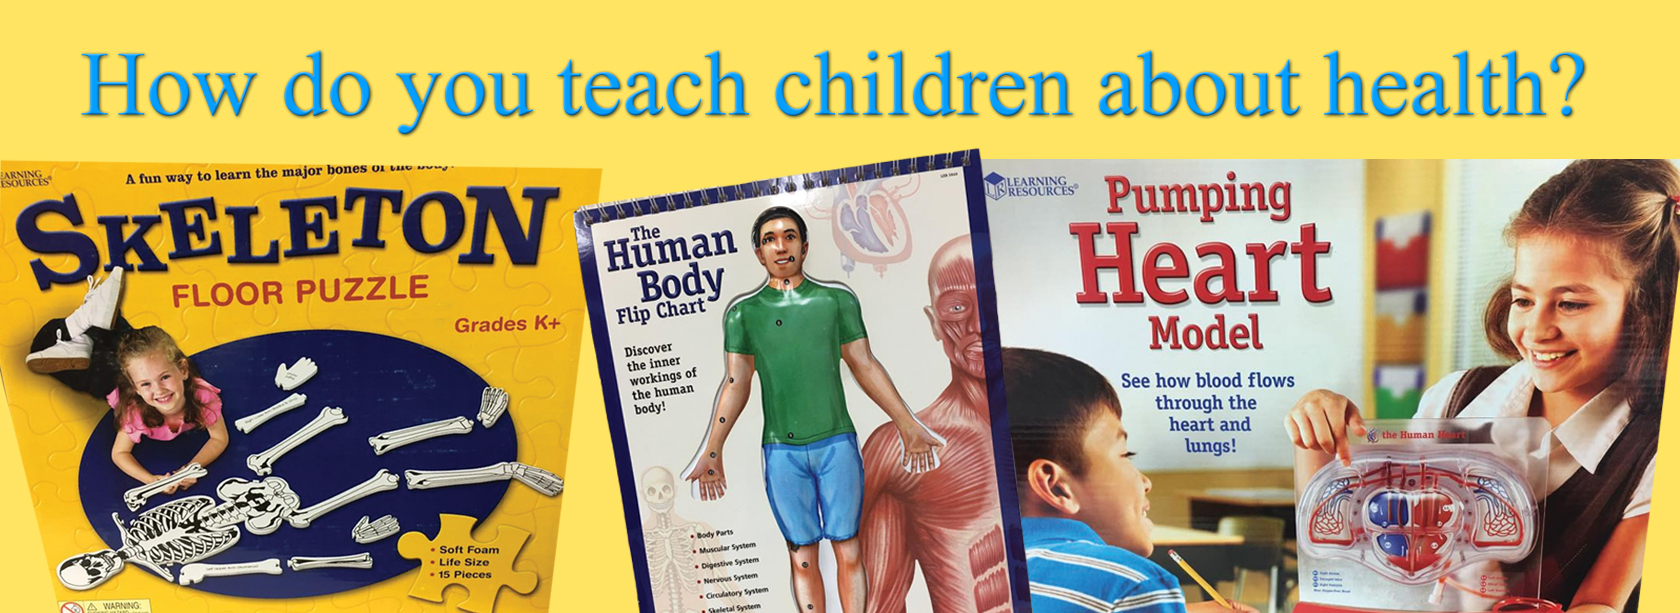 teach-children-health-banner